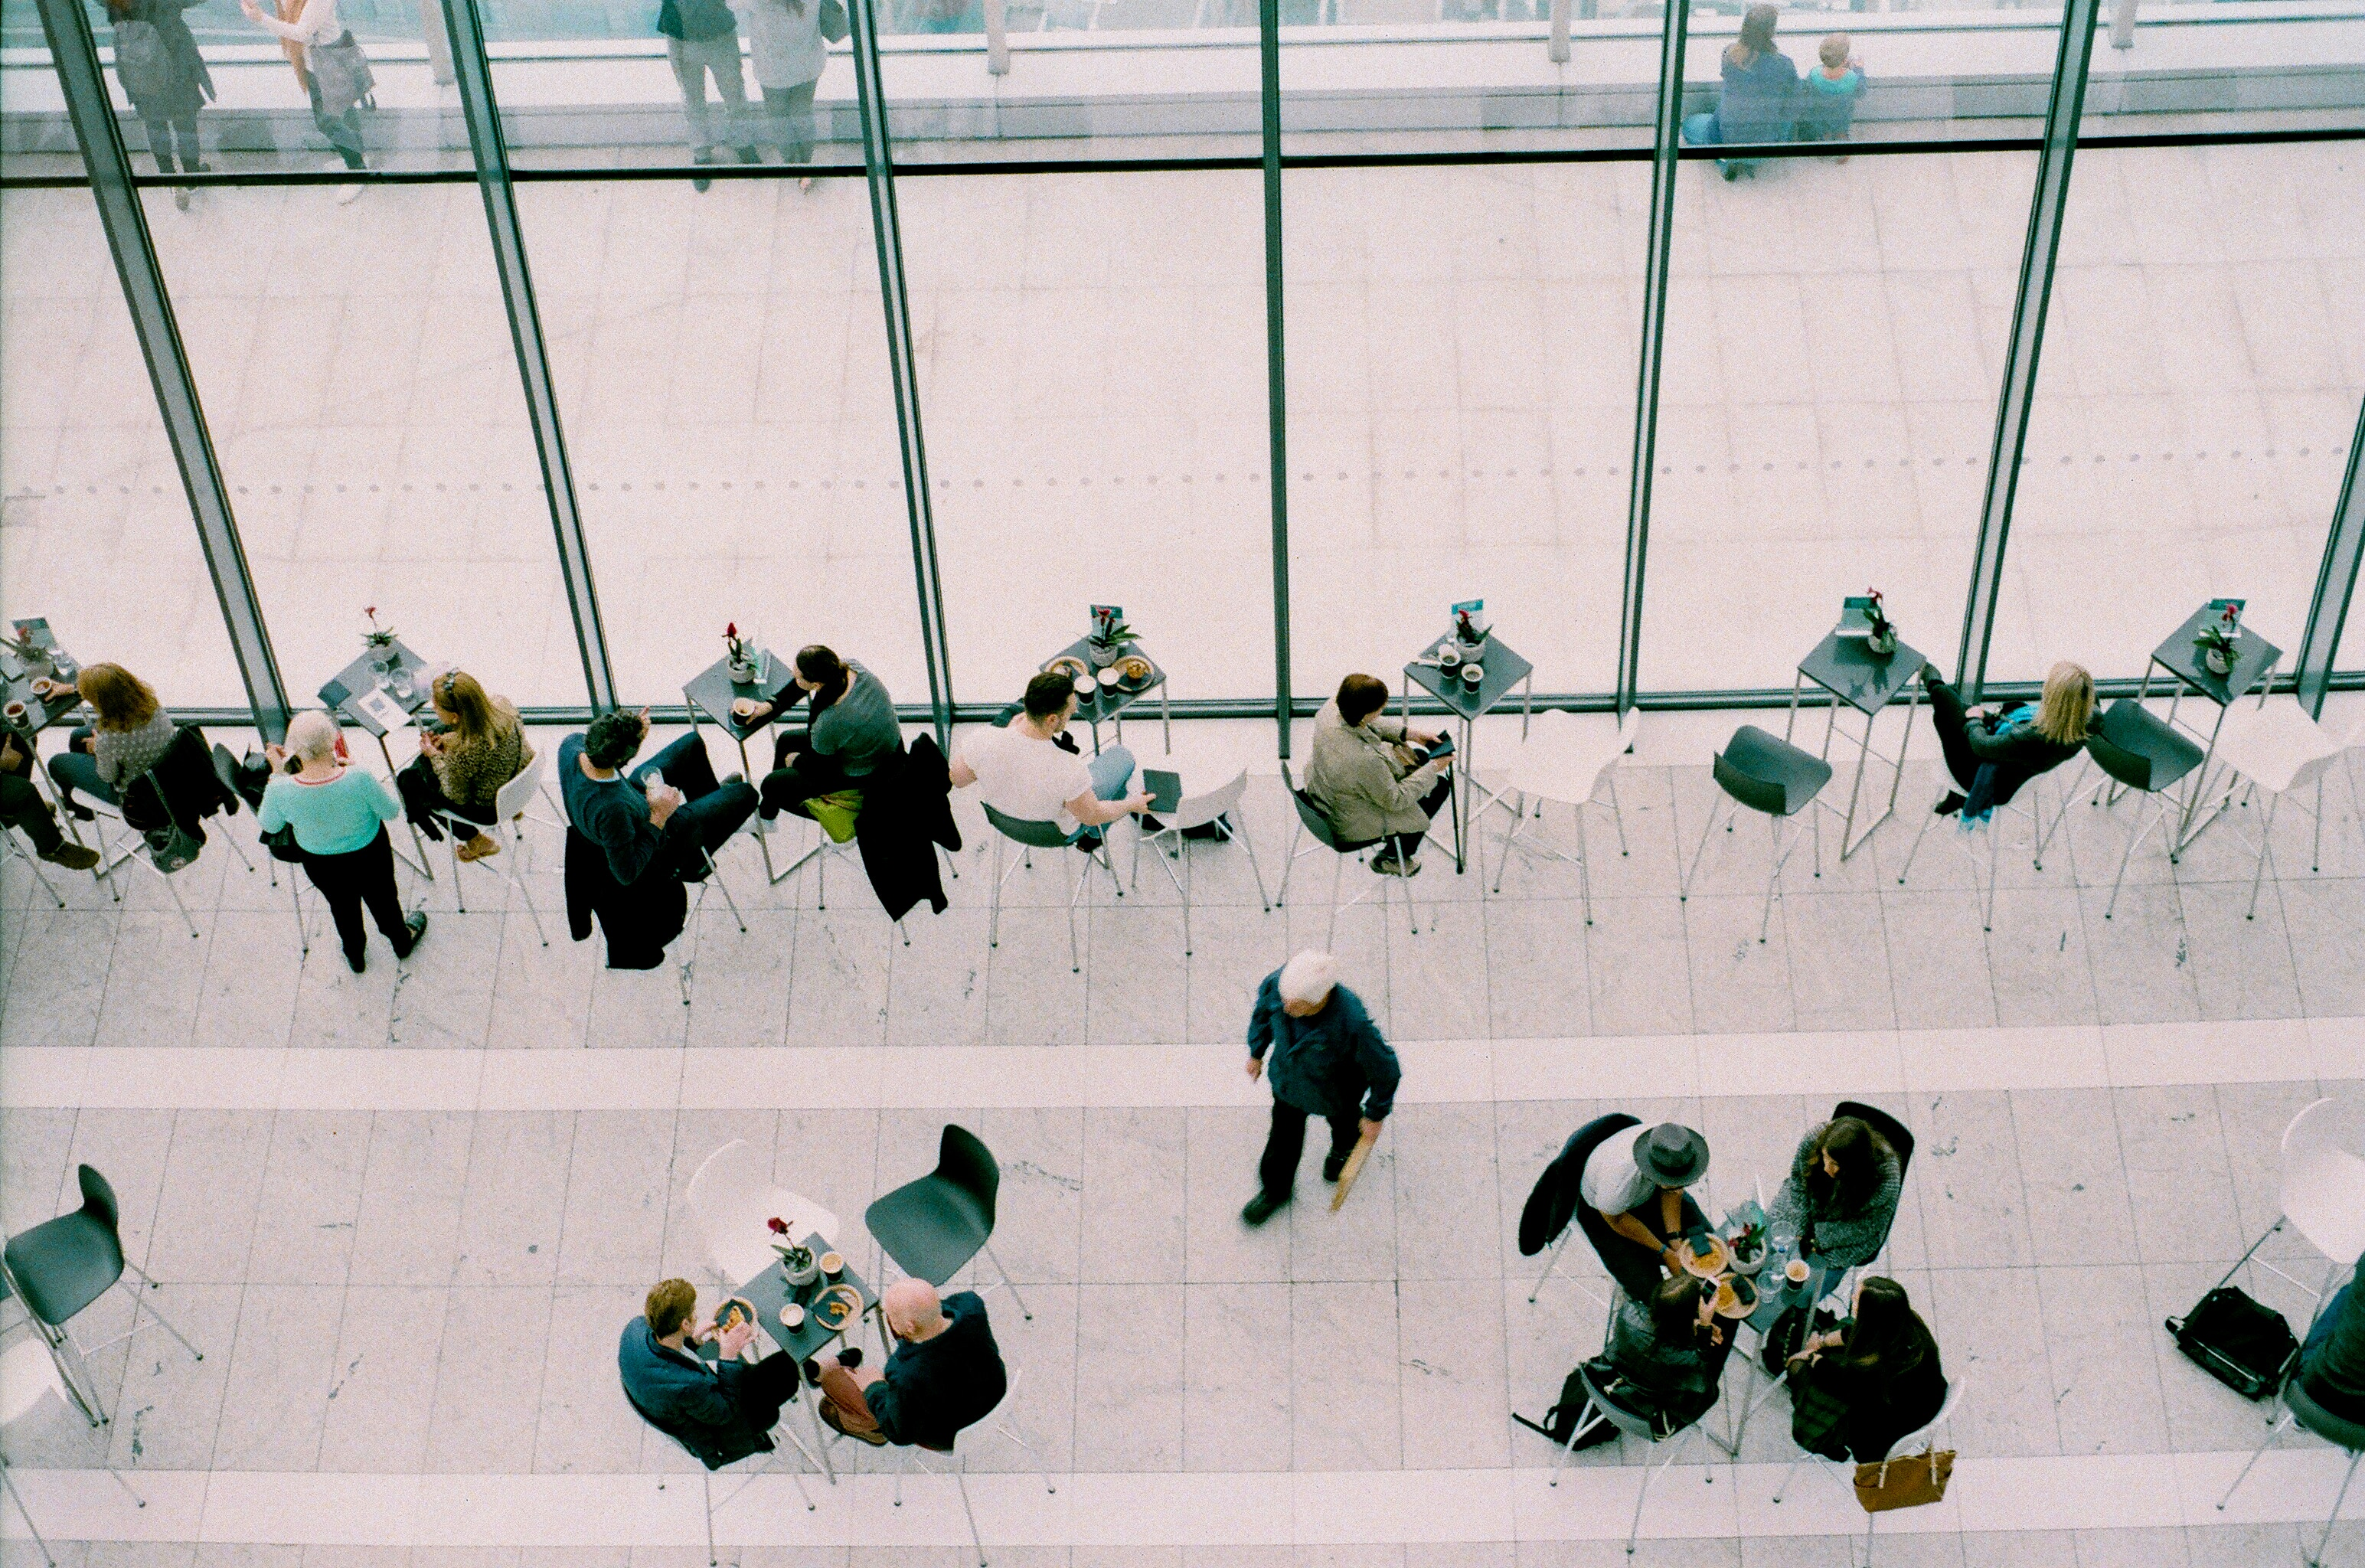 Aerial photo of several small groups of people sitting at tables in a professional work space